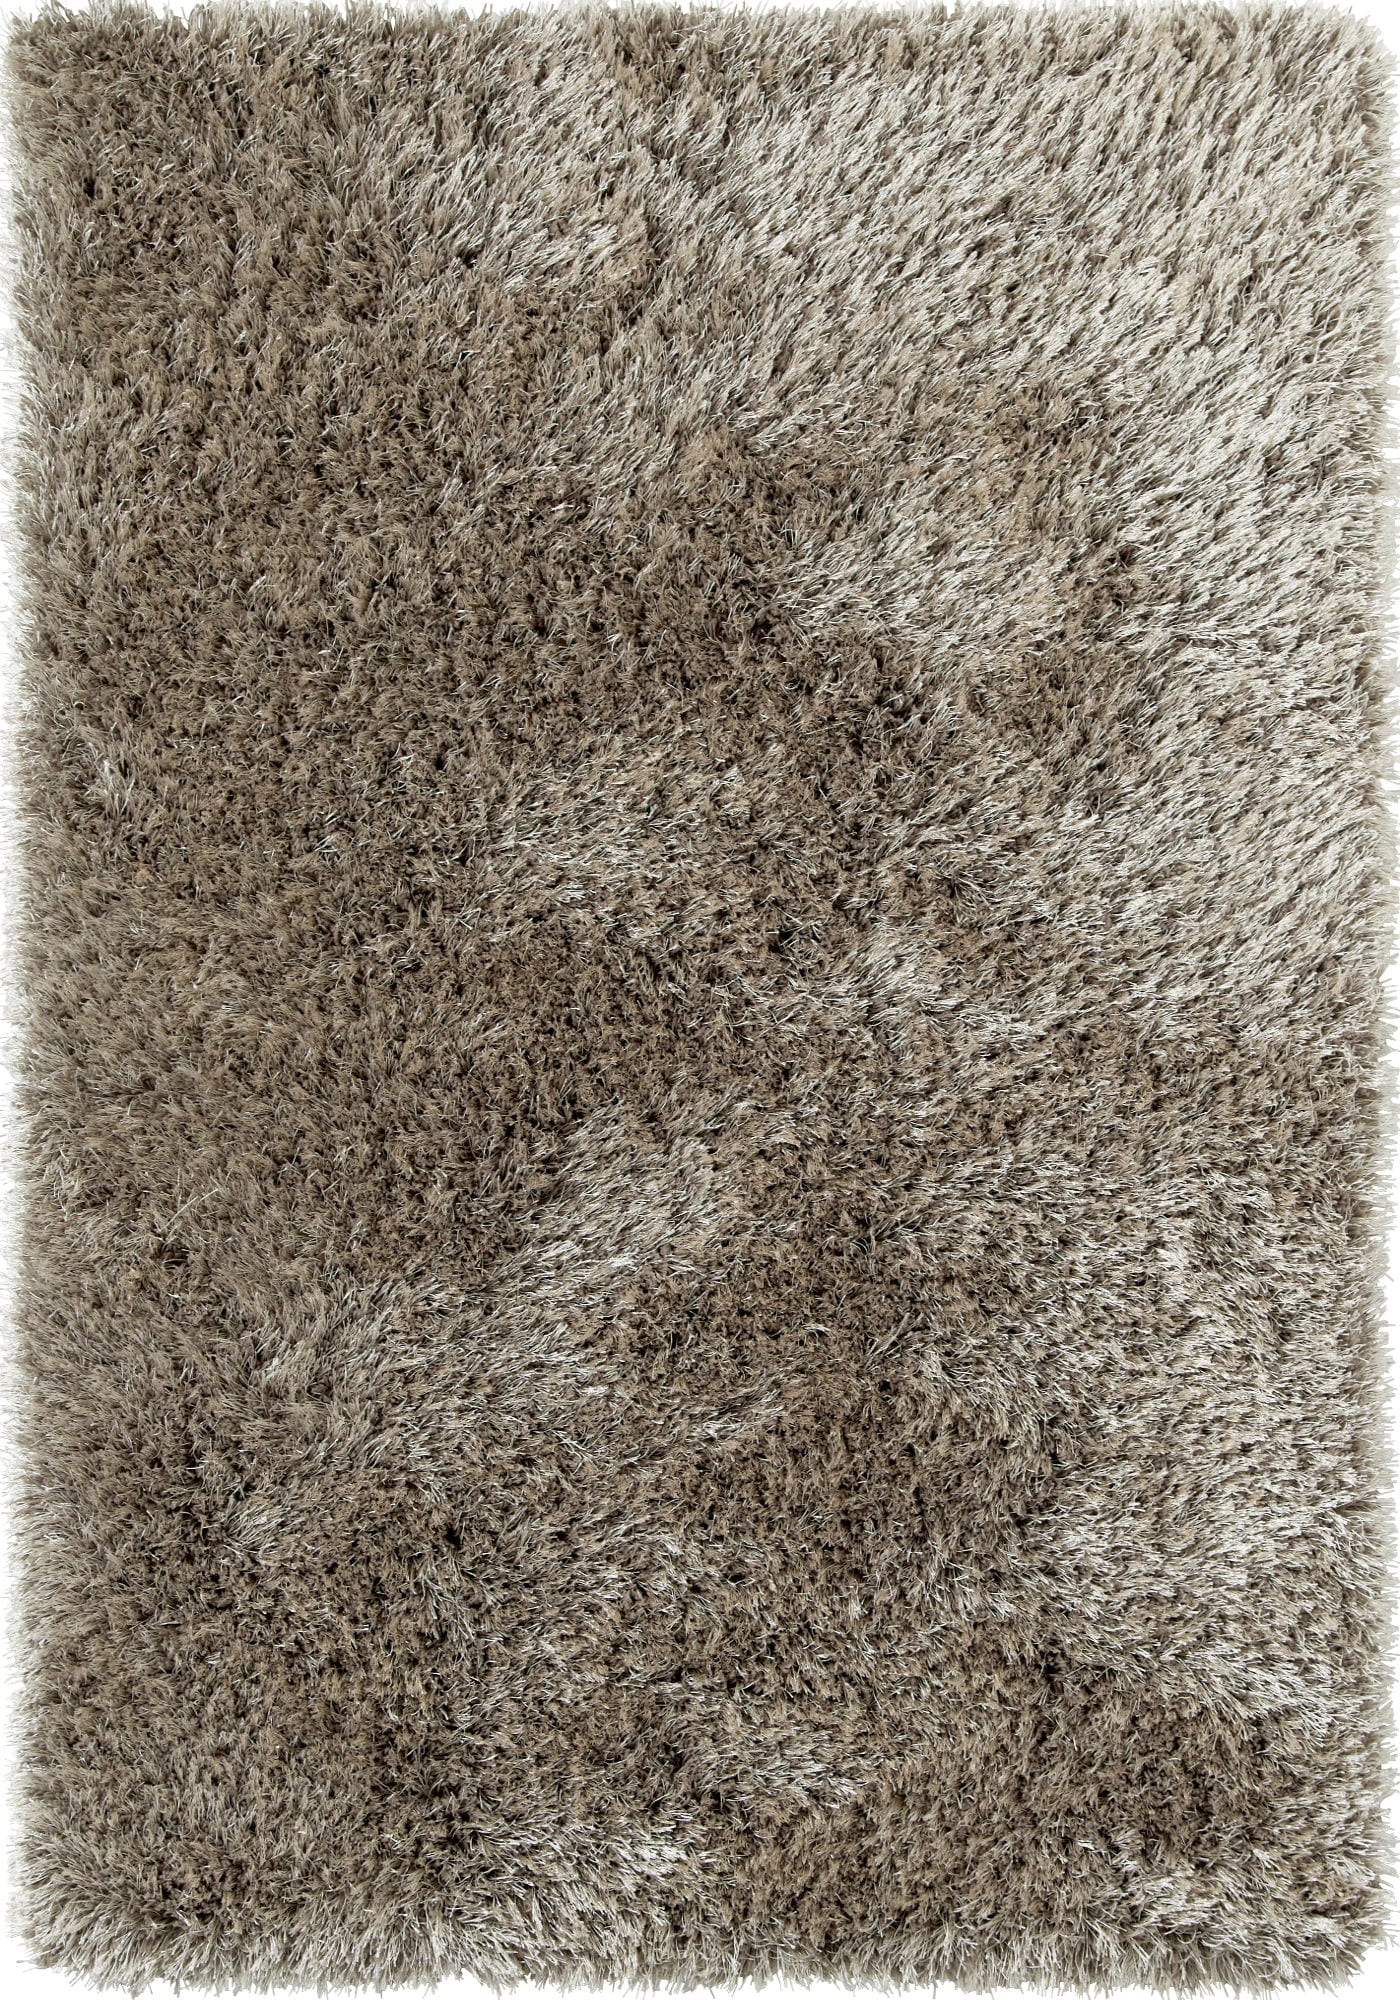 Monte Carlo Rug Colour Mink By Think